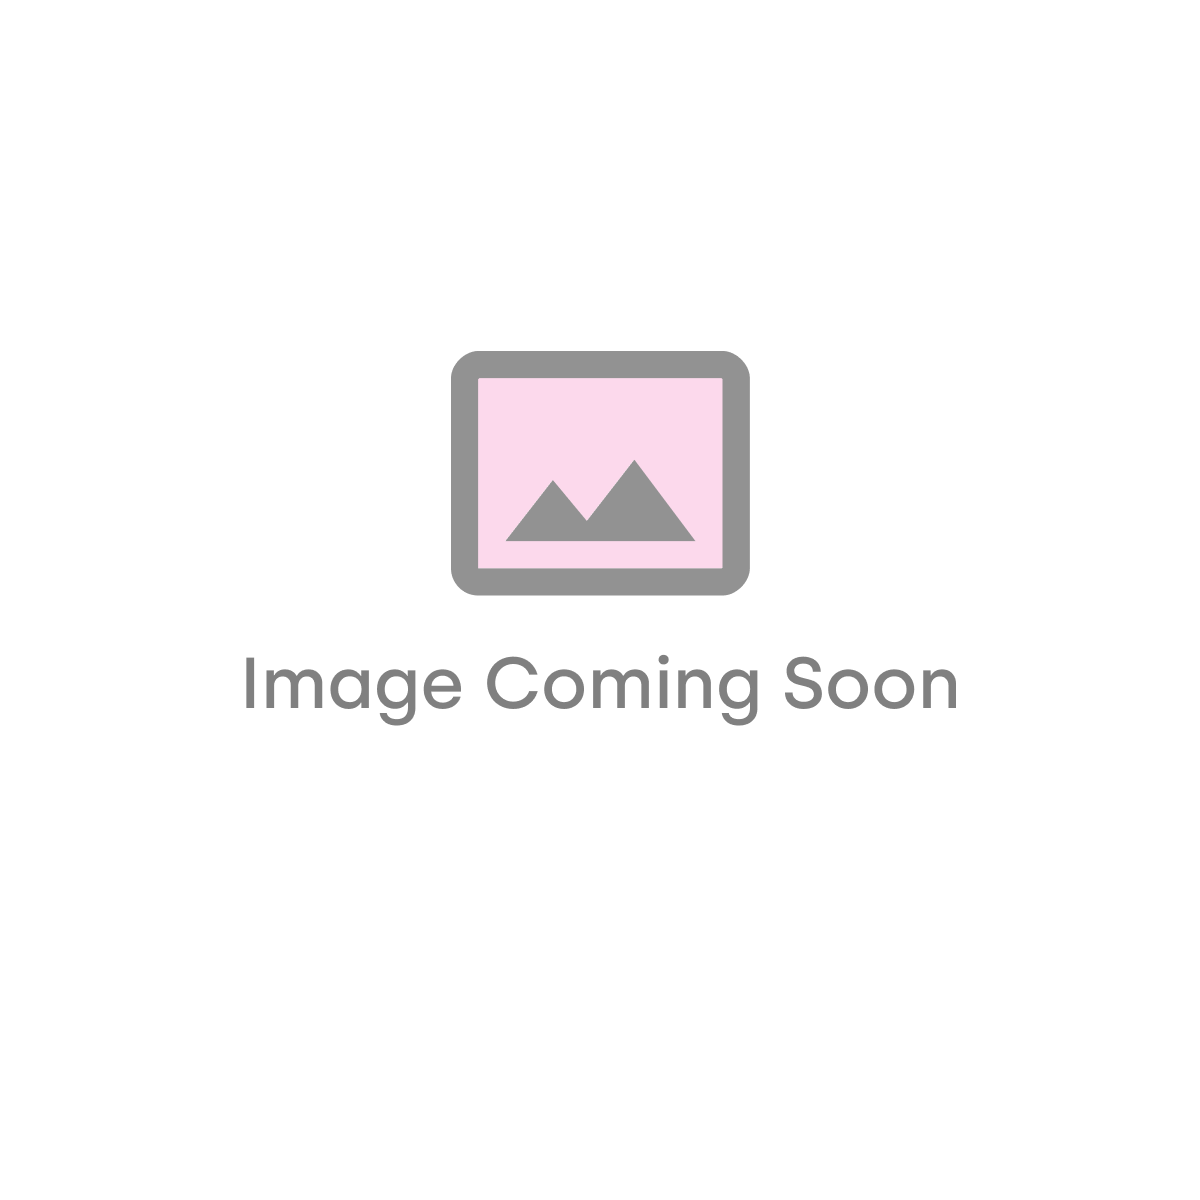 Moods Bathrooms to Love Solarna Supercast L-Shape 1700 x 700mm Shower Bath inc. Screen - Right Hand (8116)